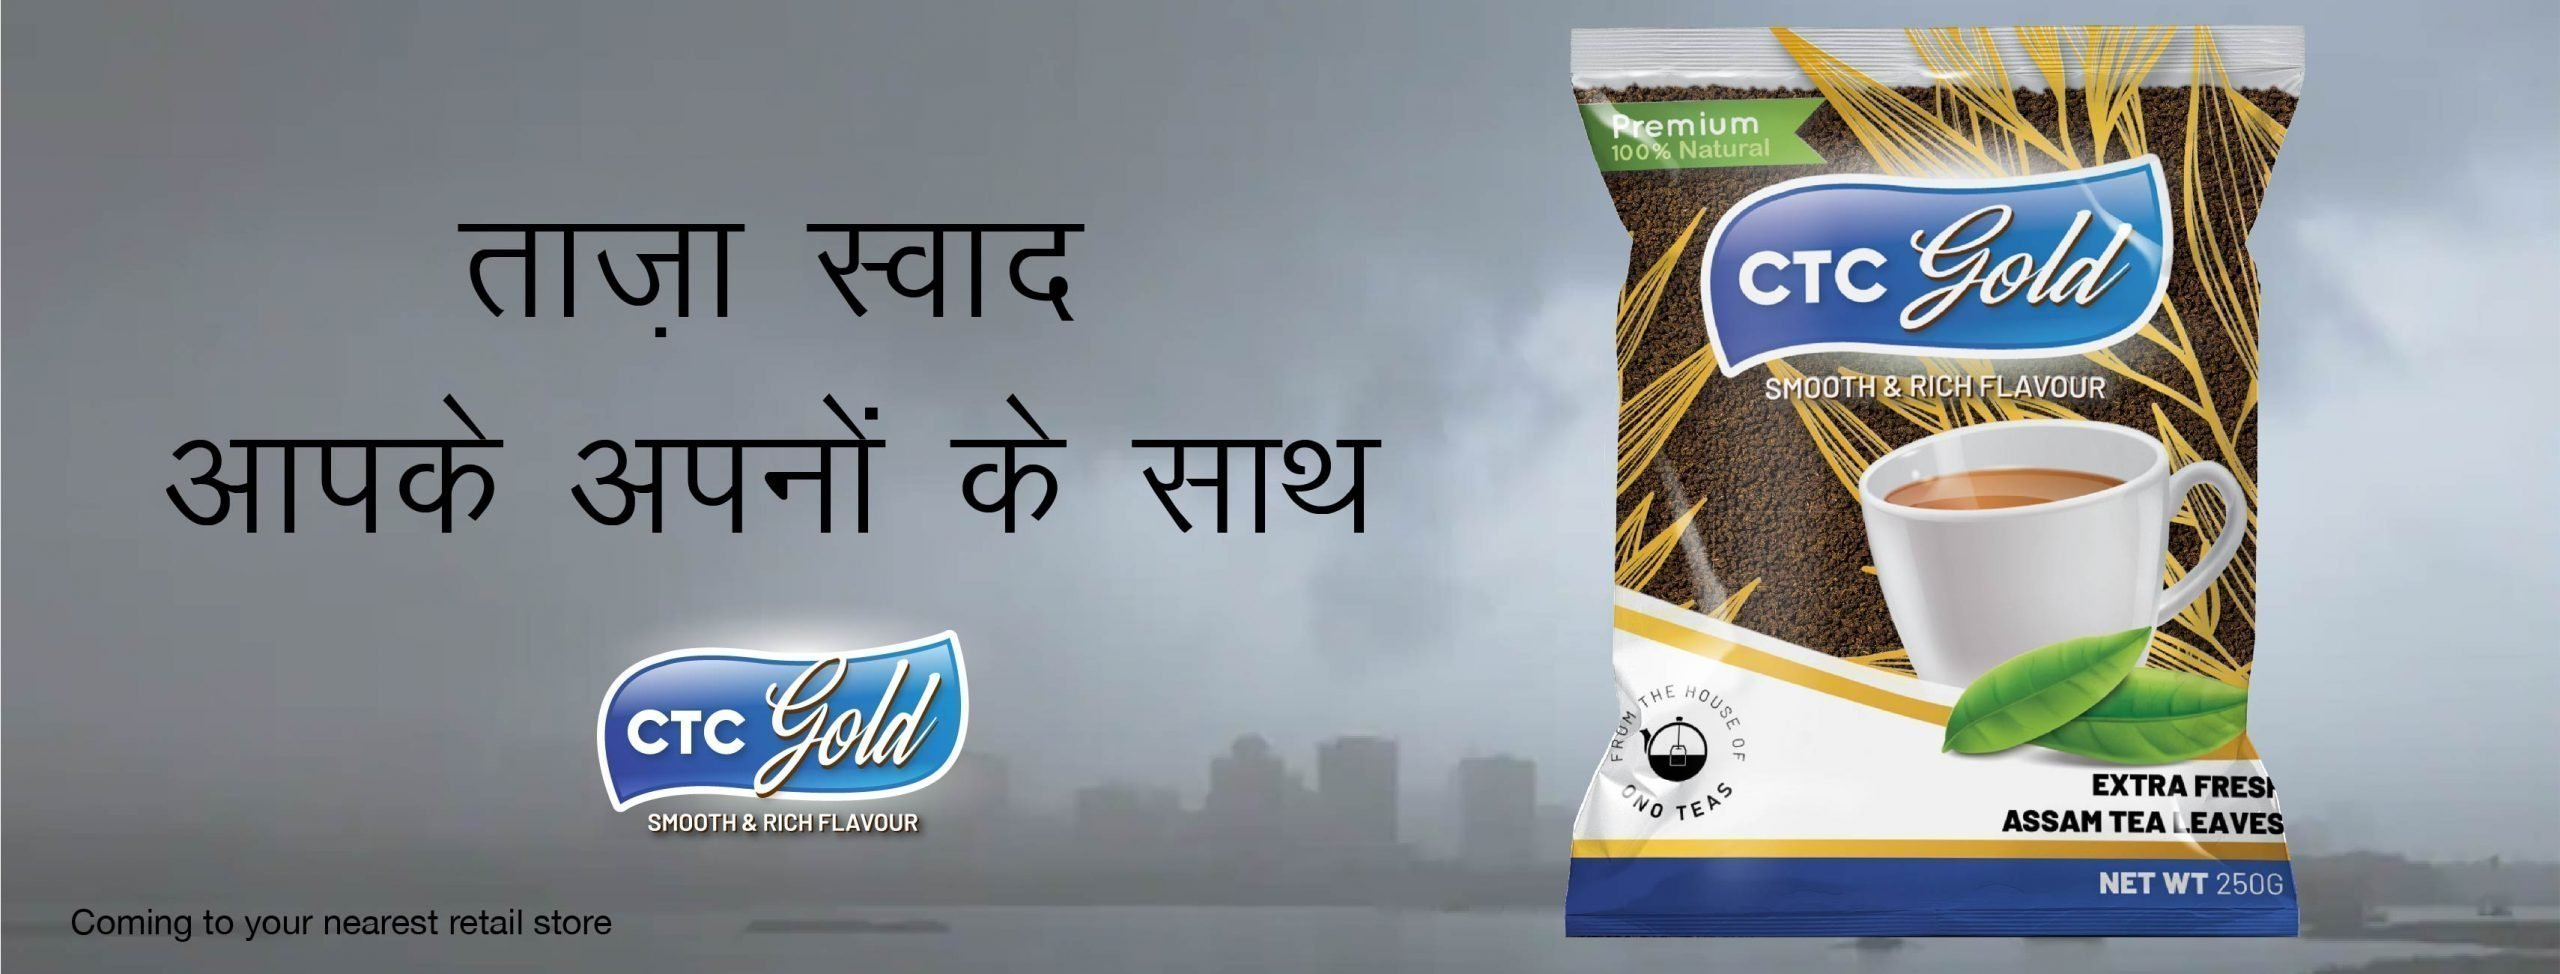 CTC Gold Now available at your nearest Retail Store